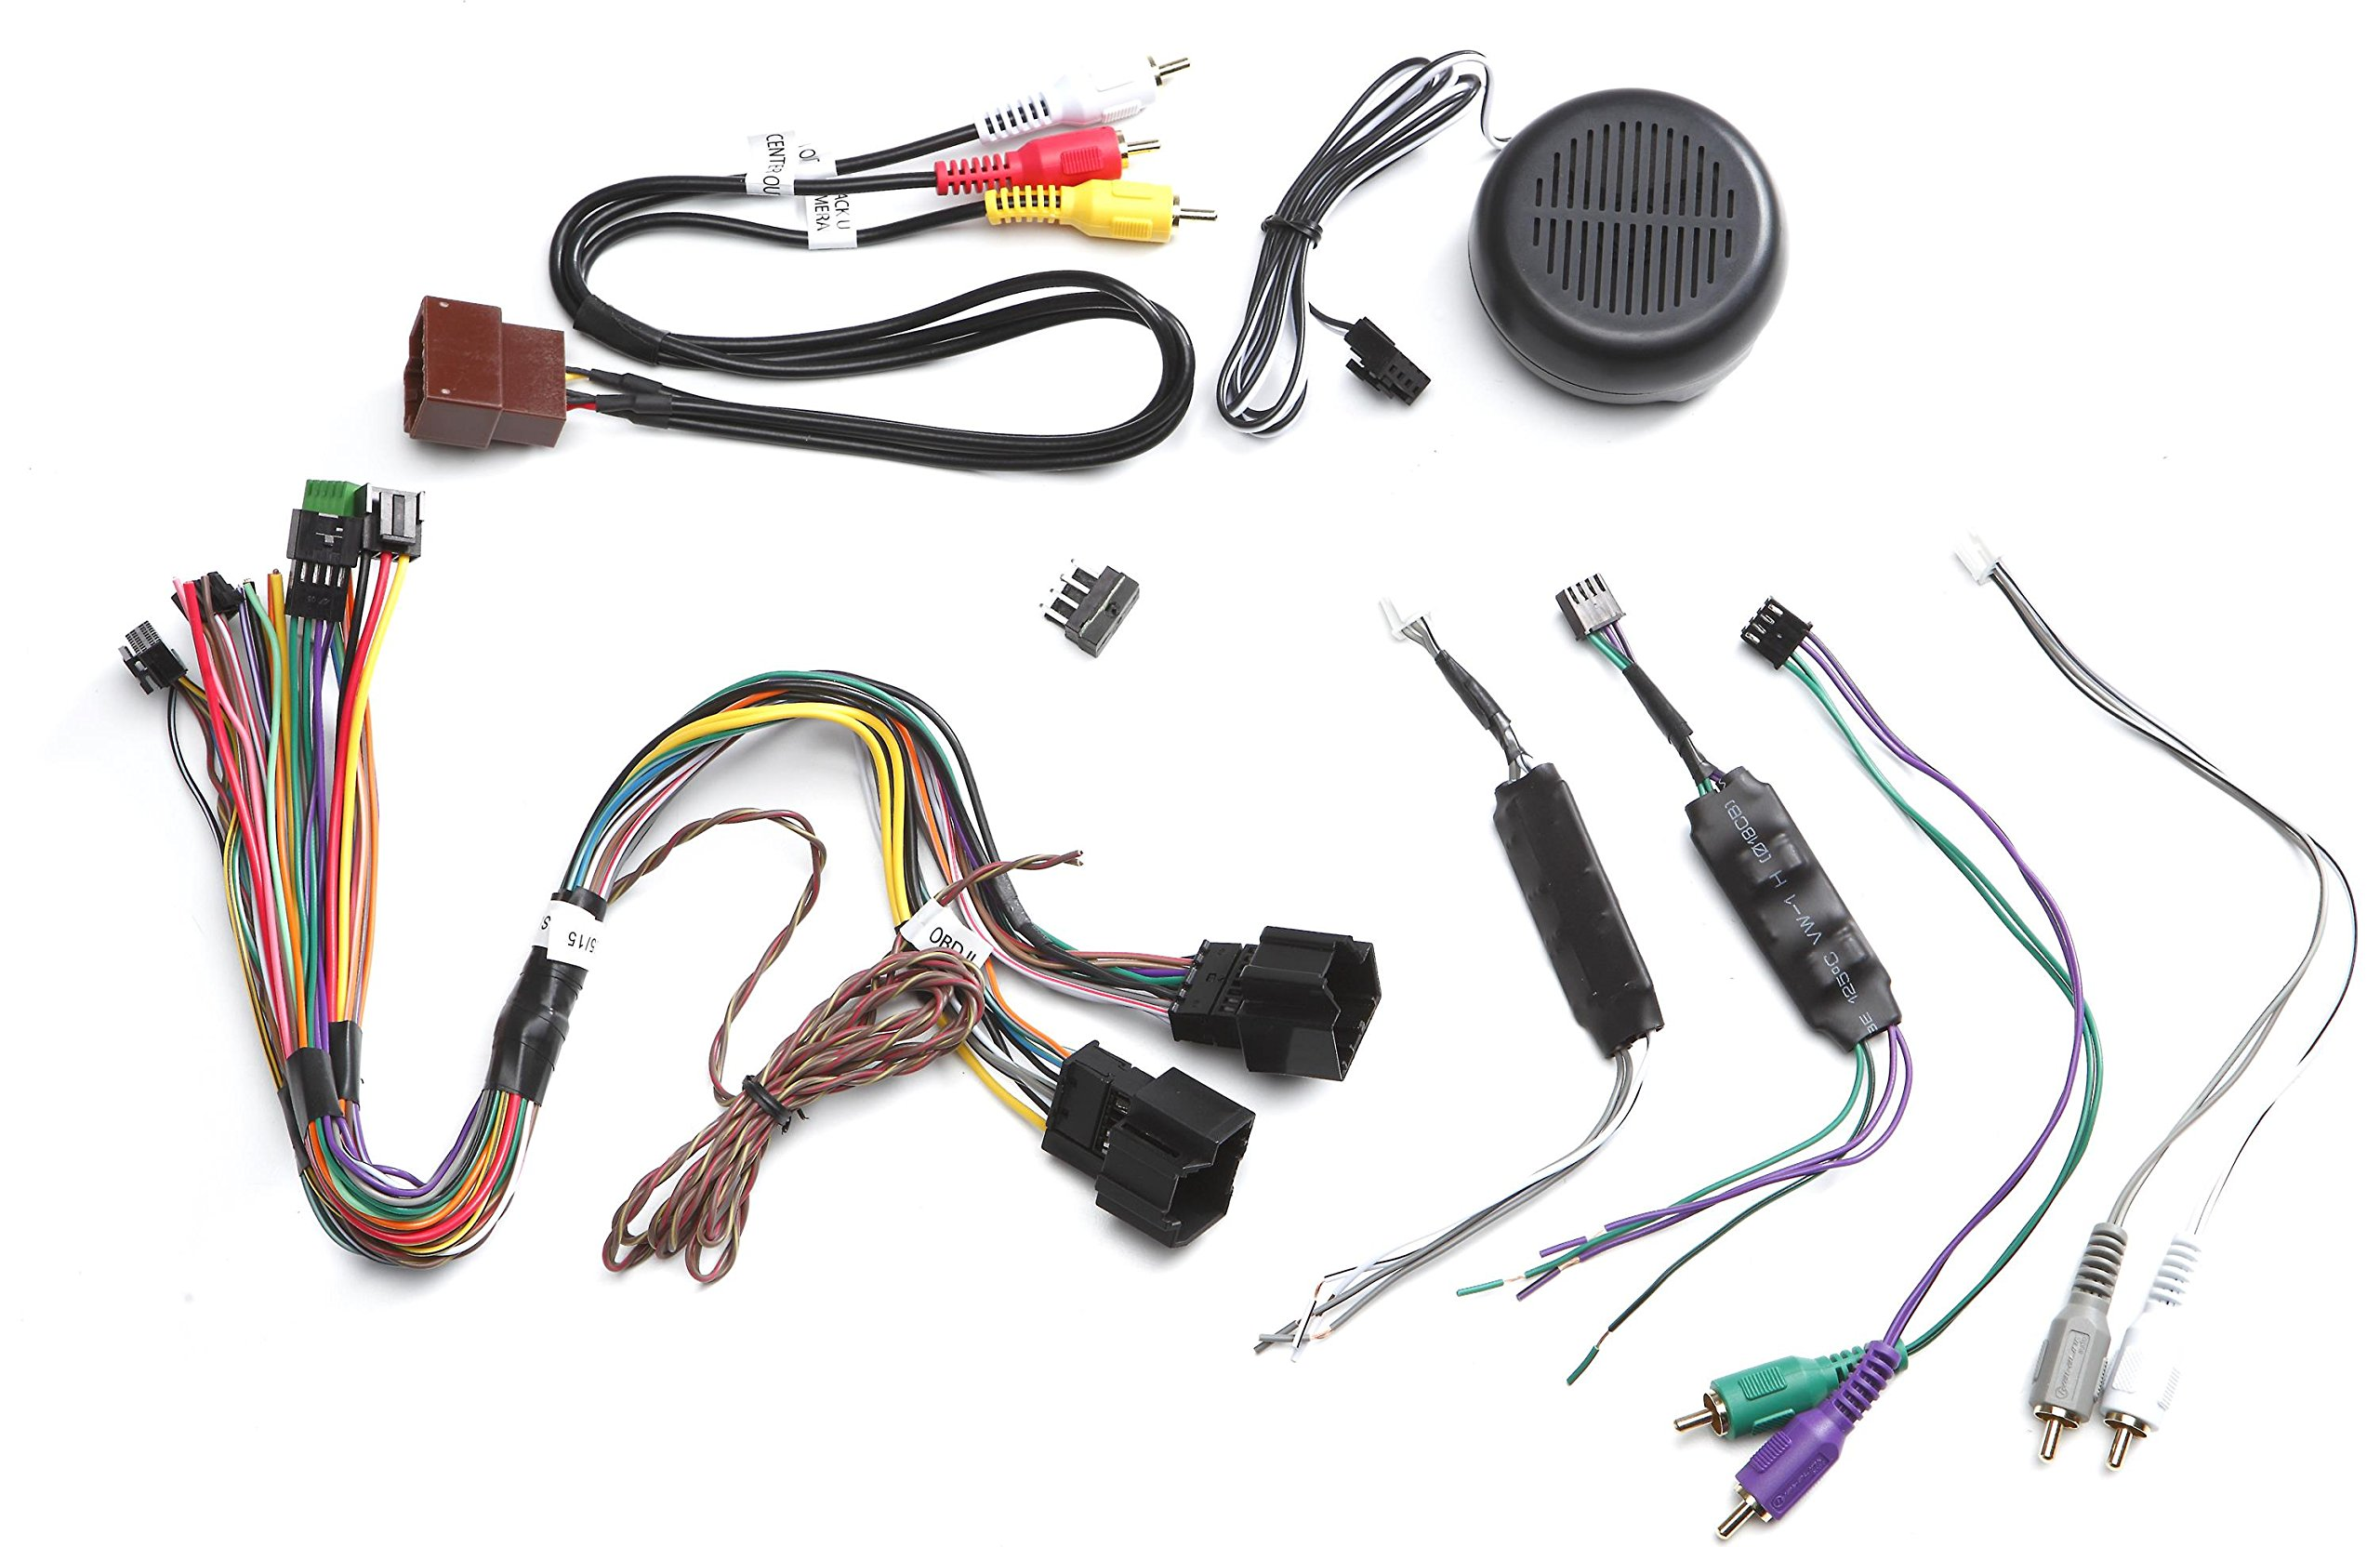 Maestro HRN-RR-GM5 Plug and Play T-Harness for GM5 Vehicles, with Speaker